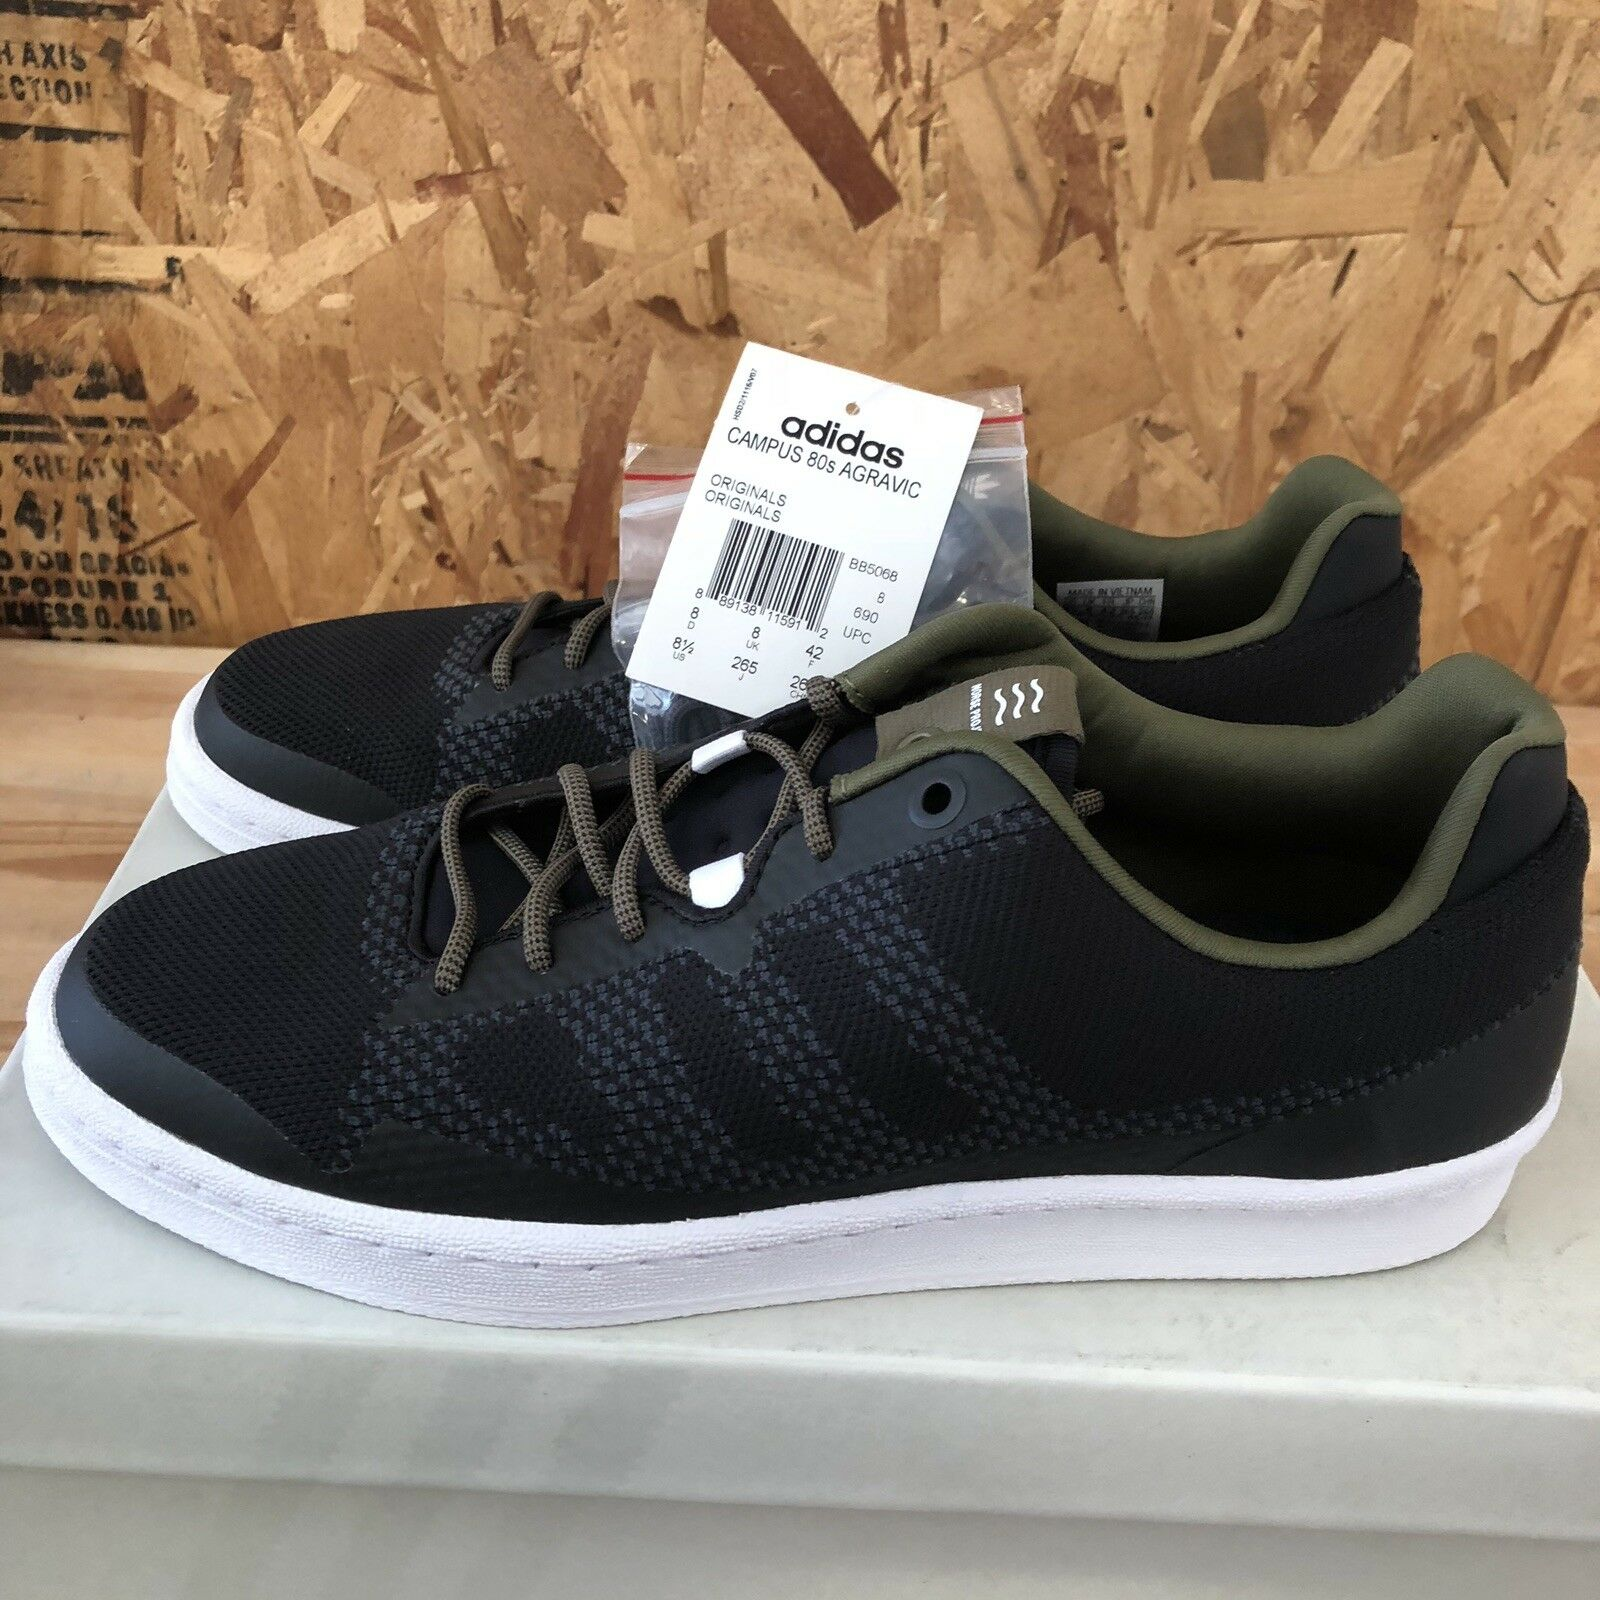 Adidas Campus 80s Agravic PK Norse Projects BB5068 - Dark Grey   Black Size 8.5